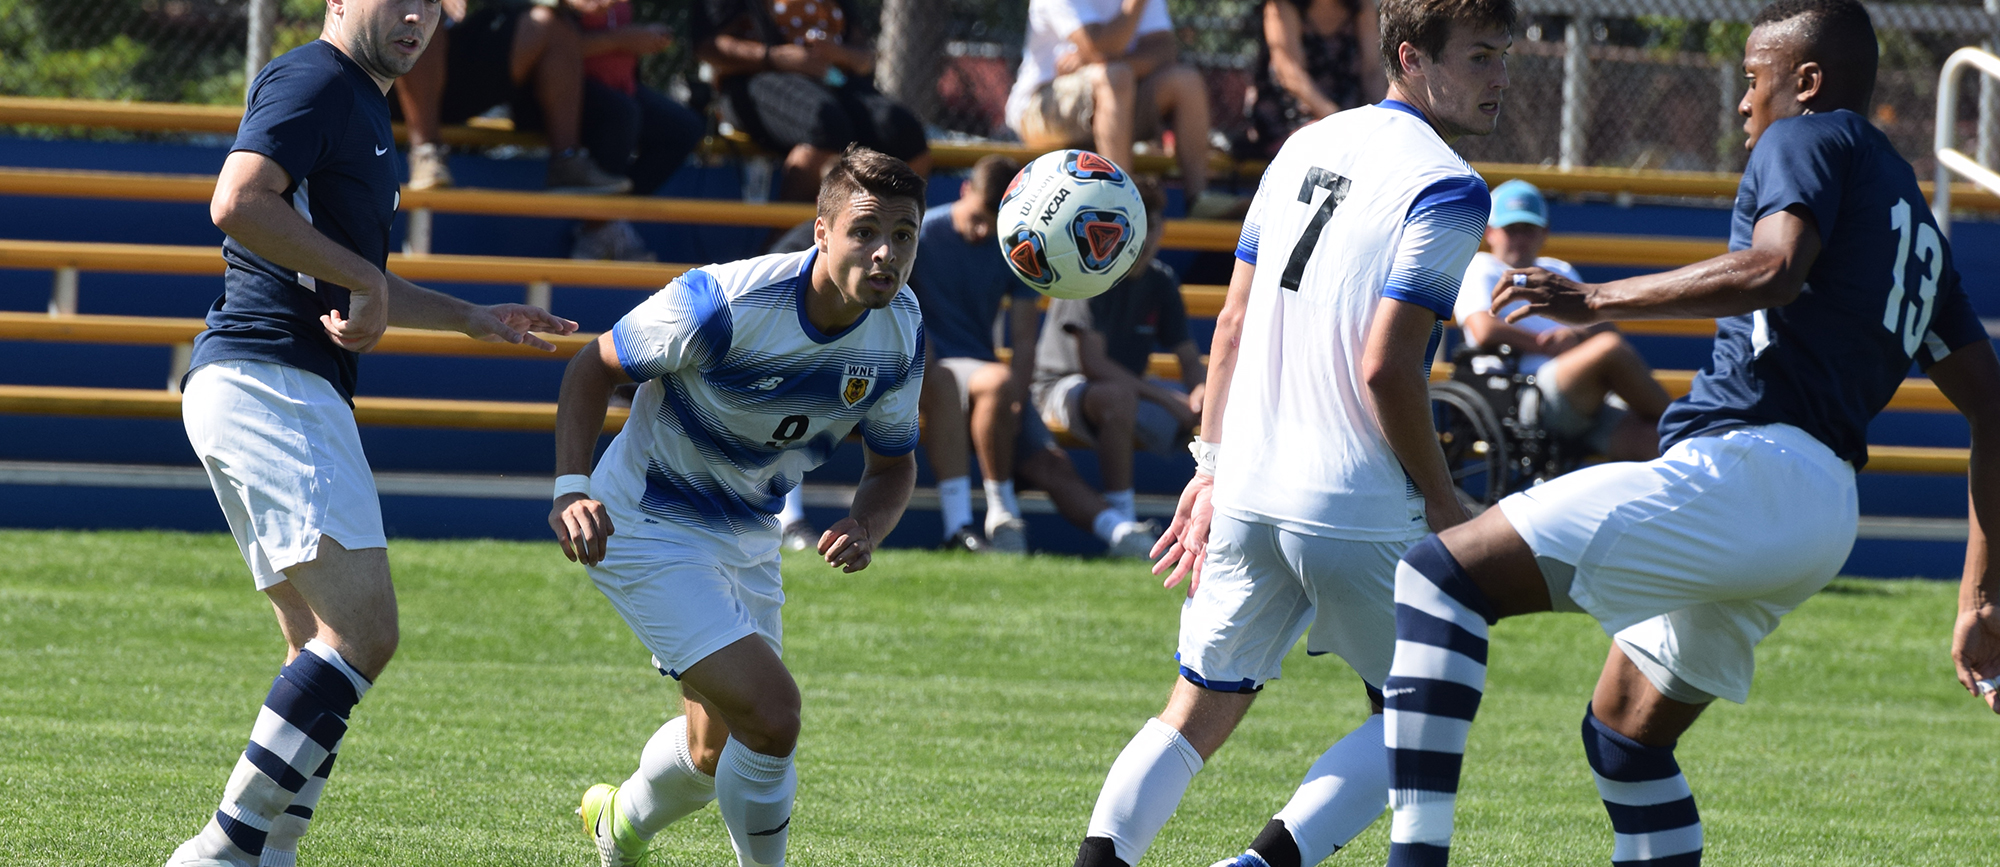 Chris Manousos scored the opening goal in Western New England's 2-2 draw with No. 25 Brandeis on Saturday. (Photo by Rachael Margossian)